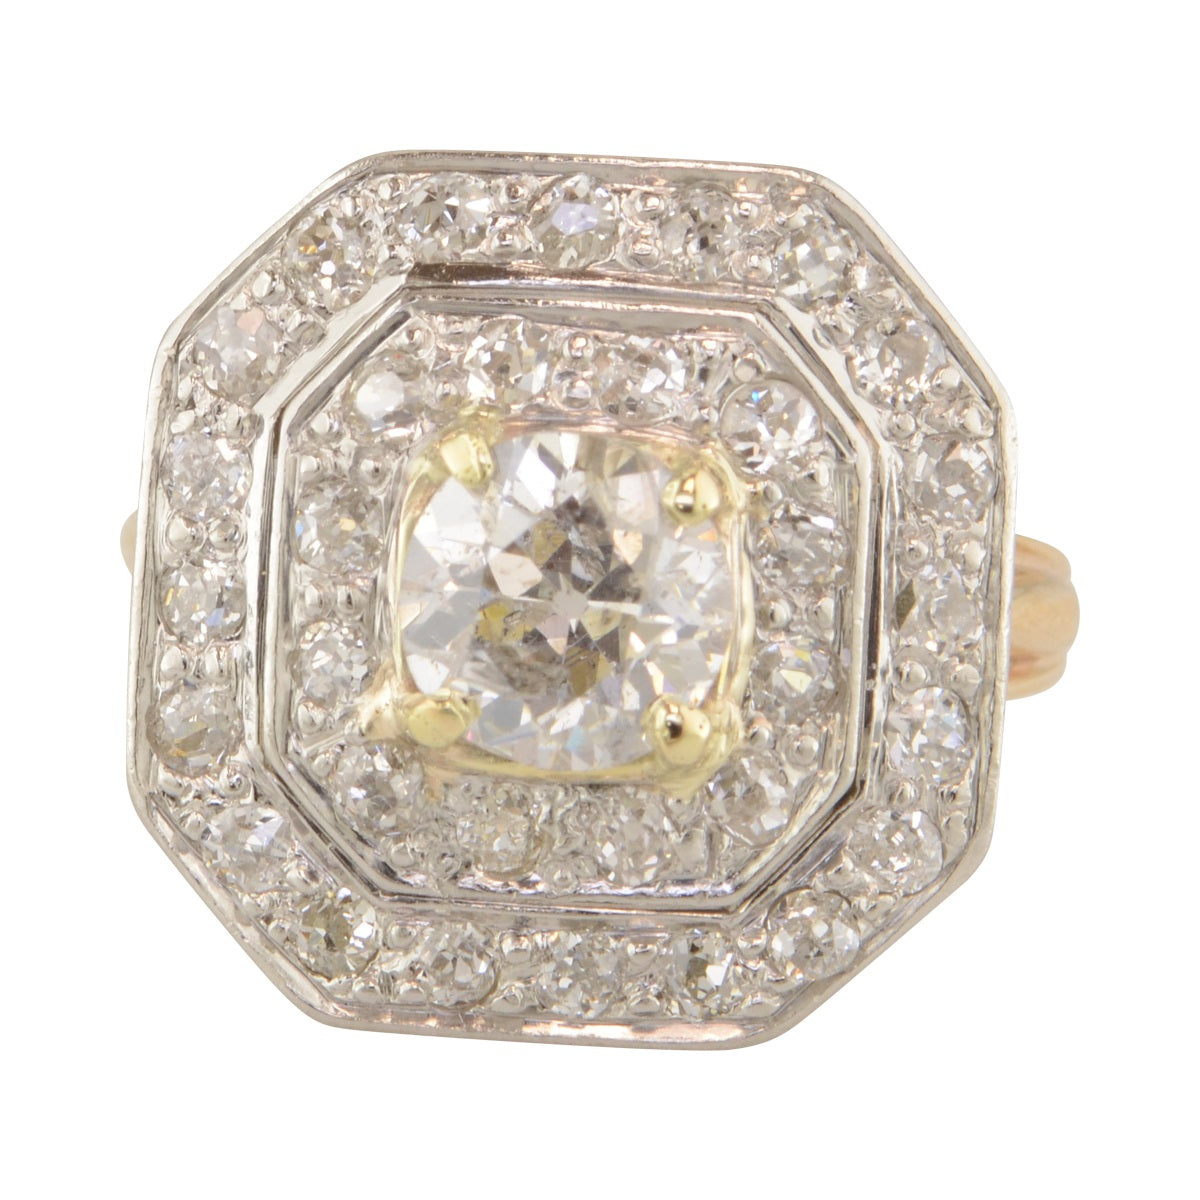 'Holly' Antique diamond geometric halo ring.